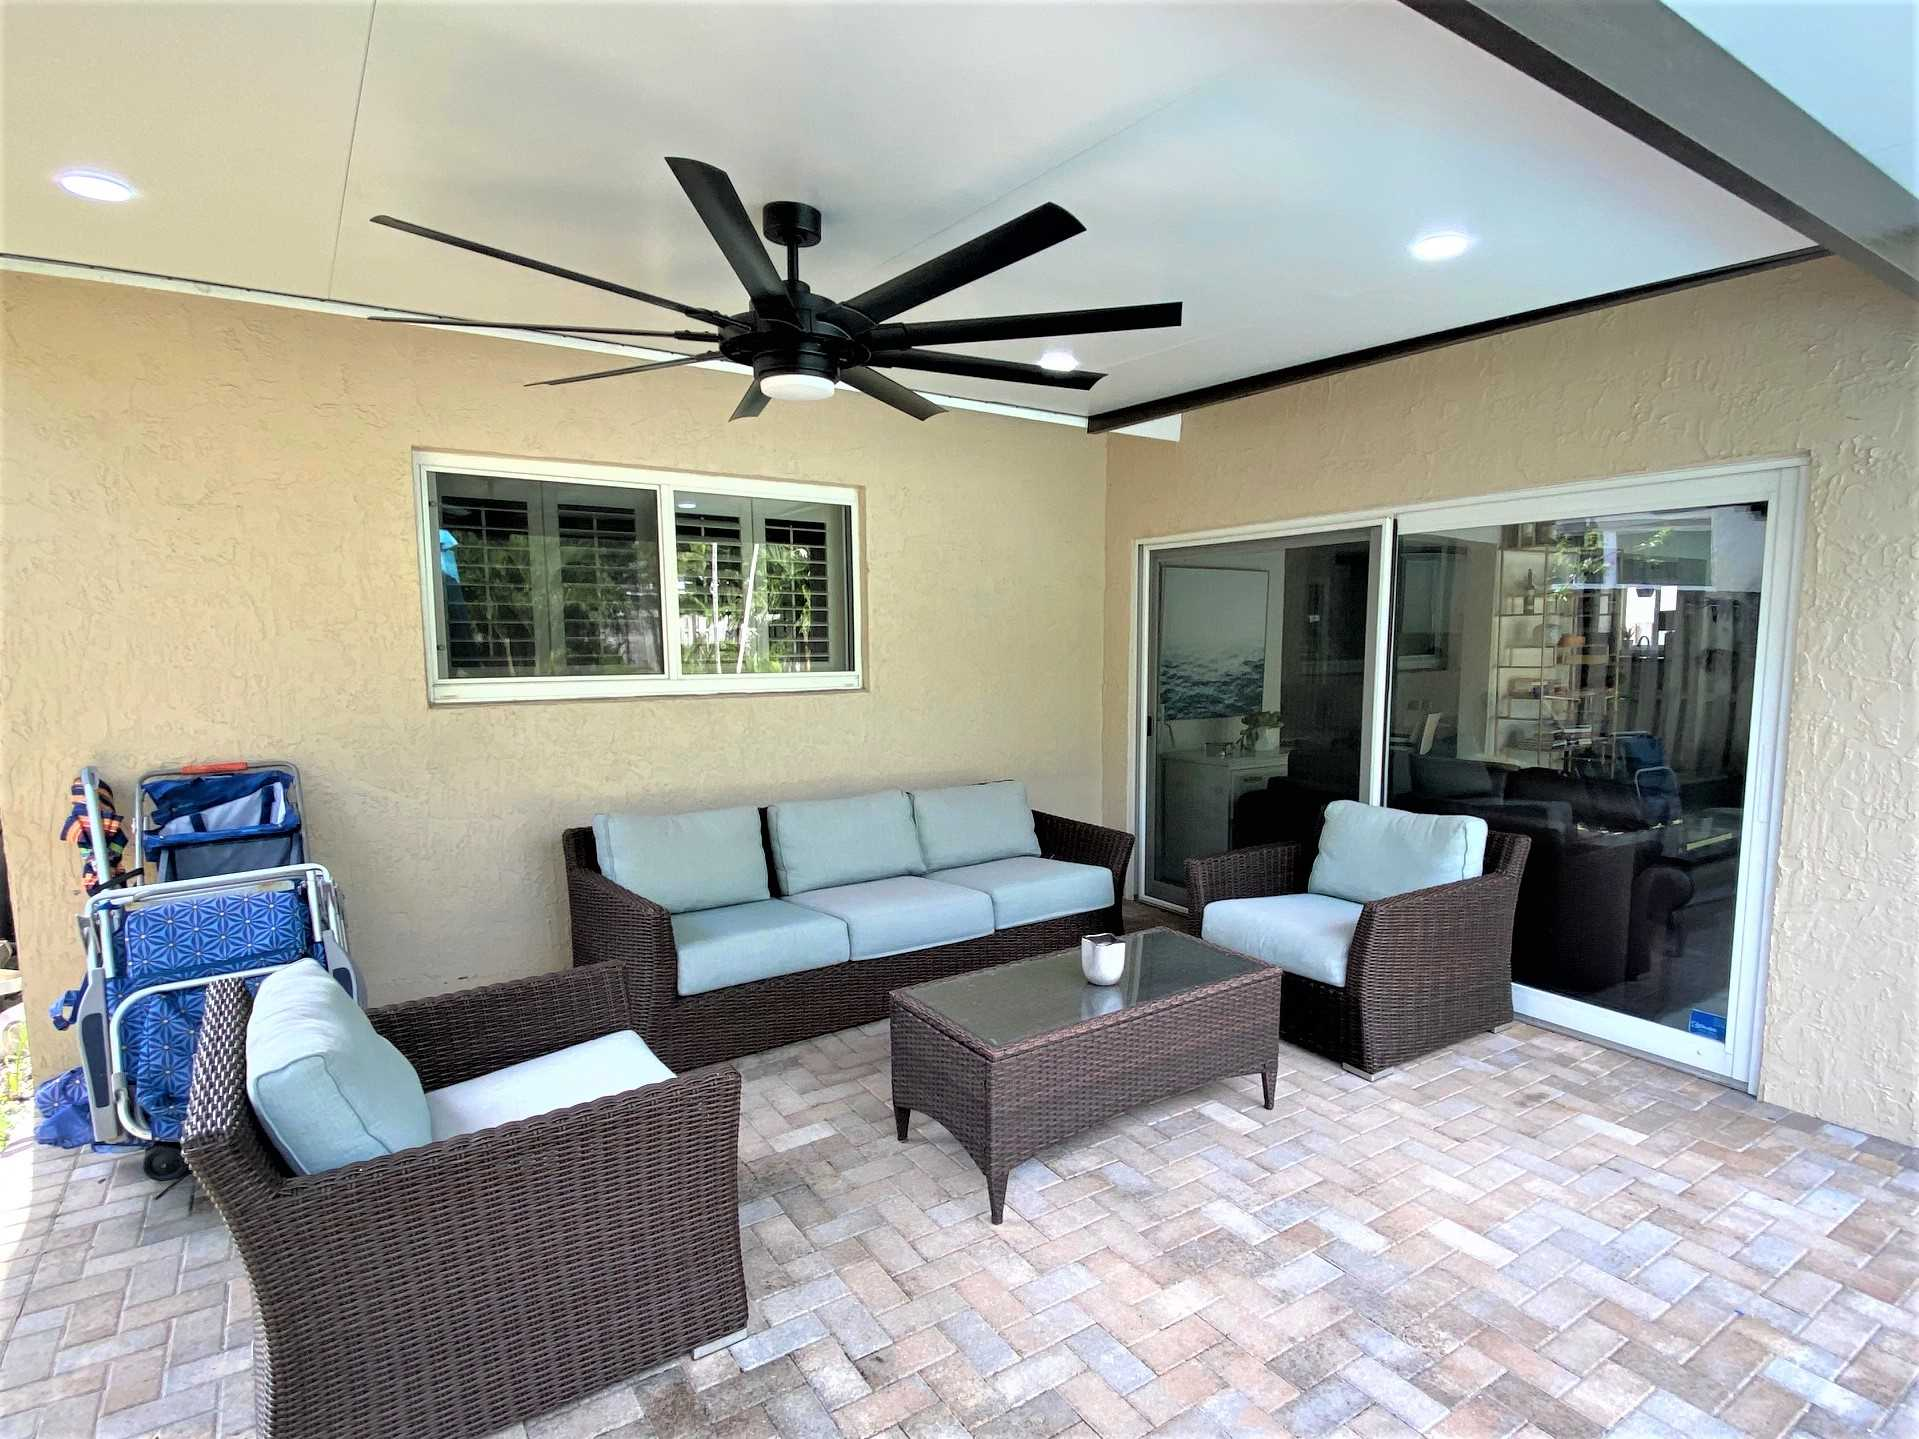 Relax in the covered patio area.